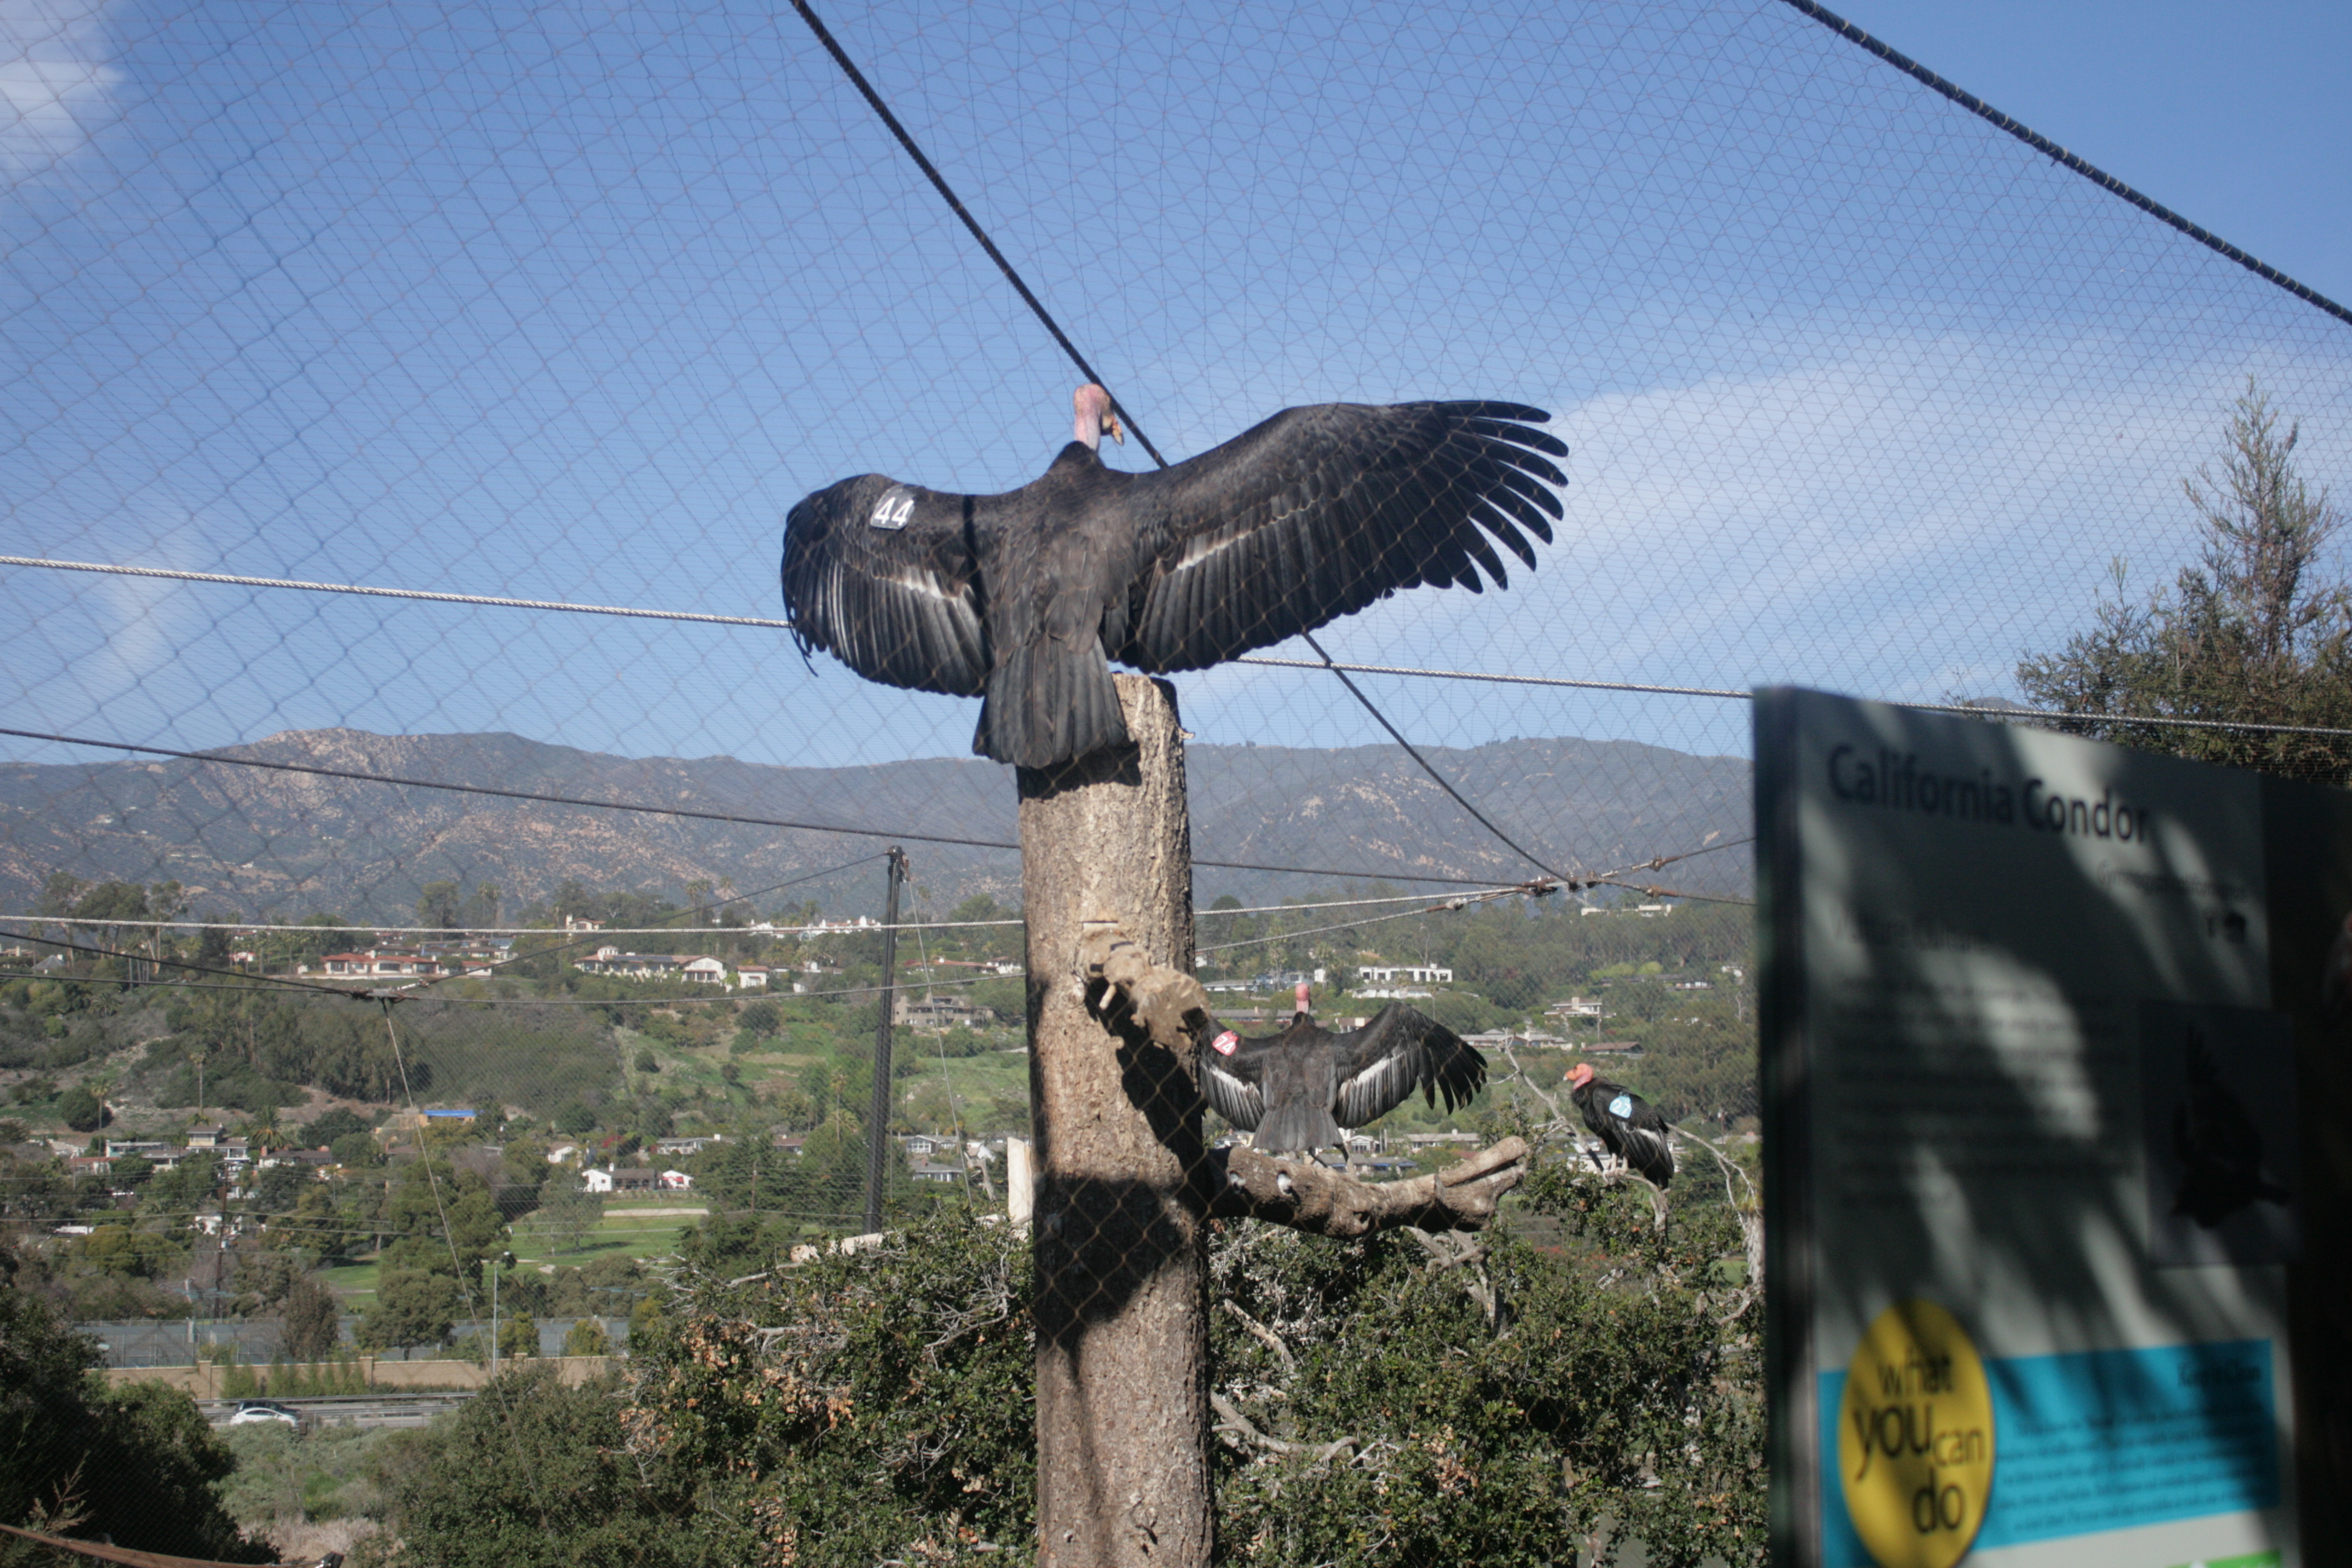 The features of the california condor and its development